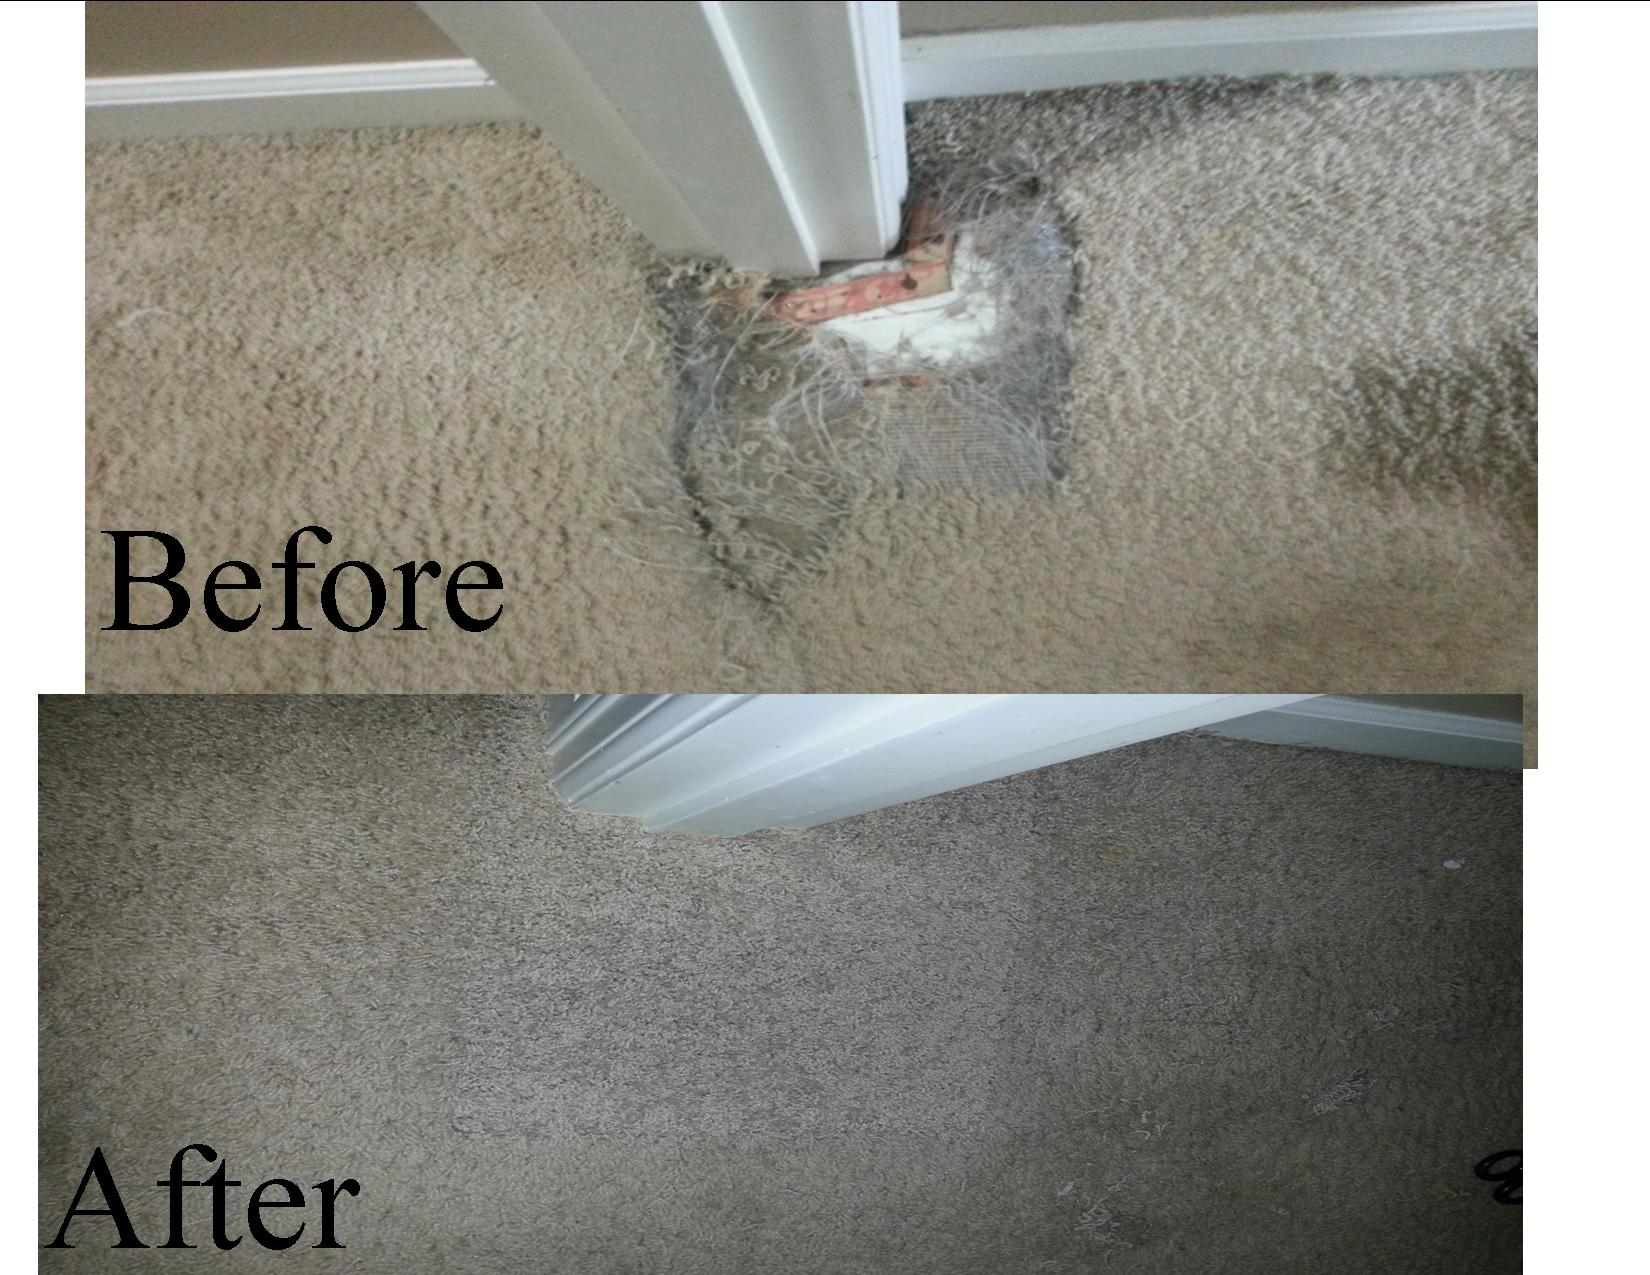 ... our carpet repair specialists use the latest technology and method to stretch re seam your give ...